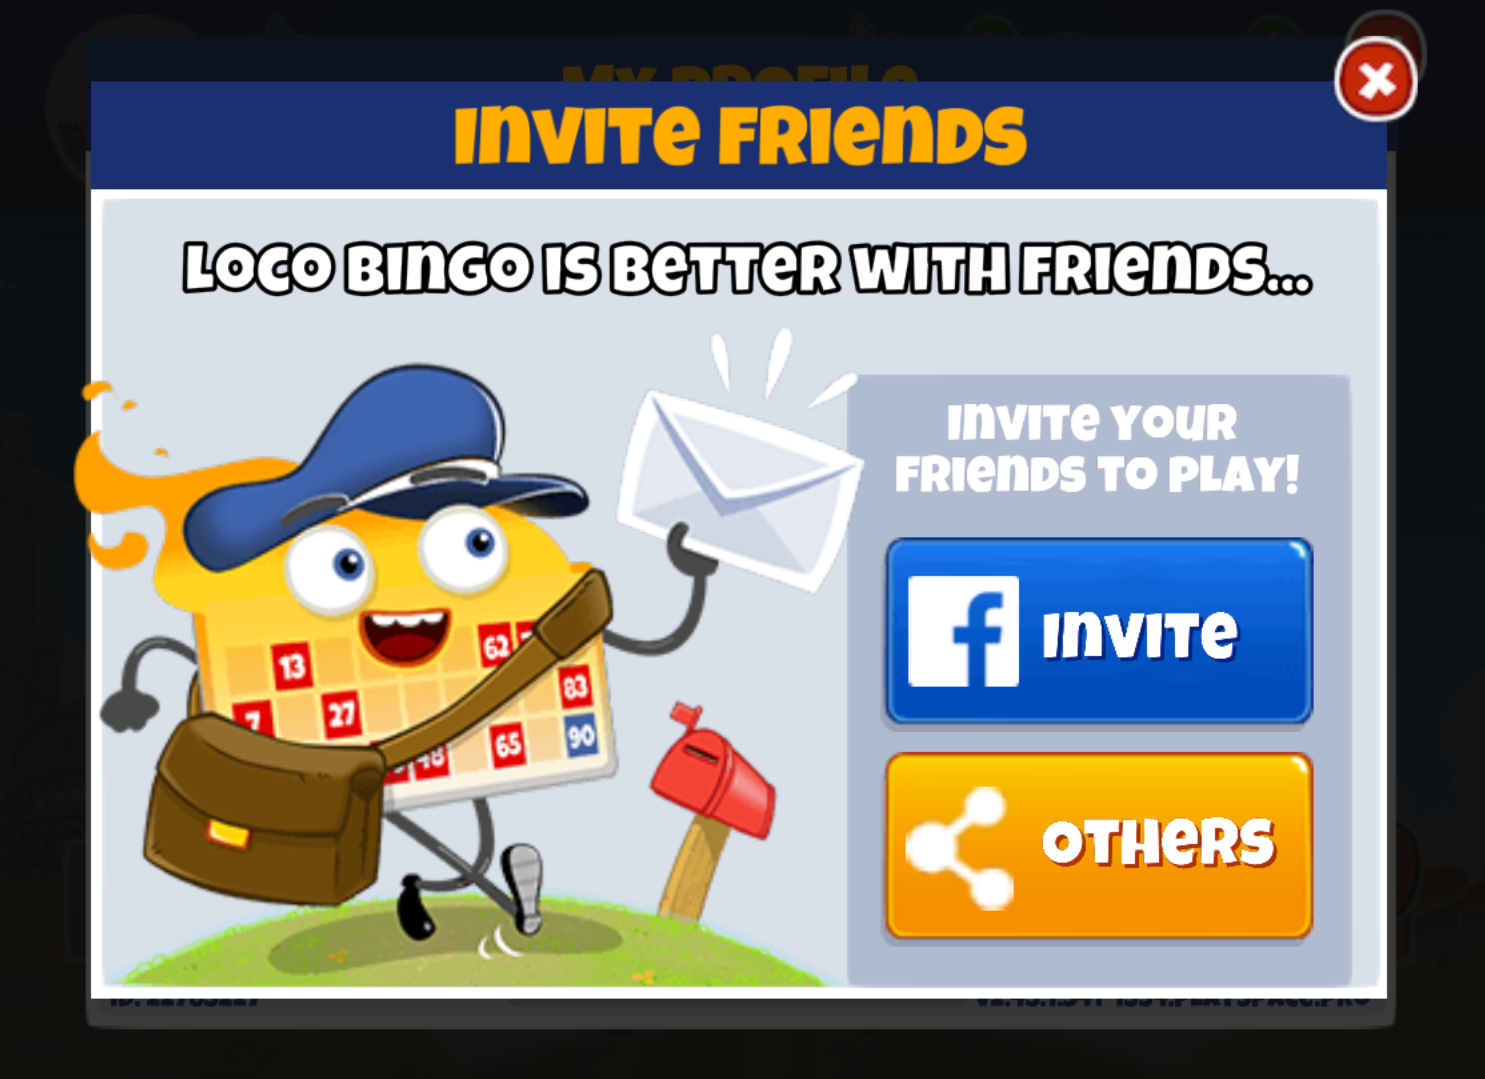 invite_friends.png